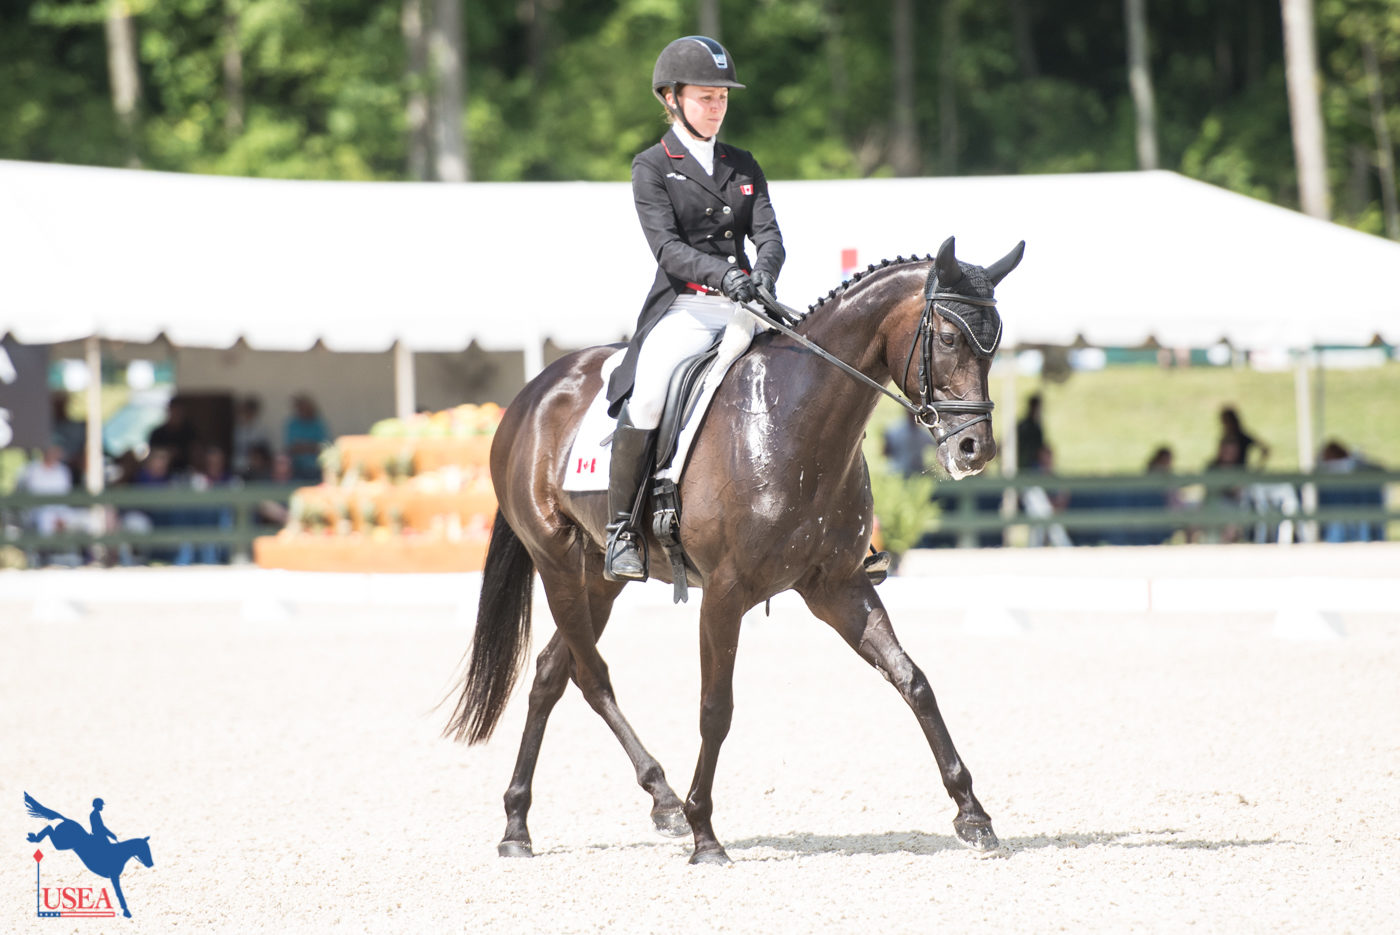 23rd - Jessica Phoenix and A Little Romance - 58.1